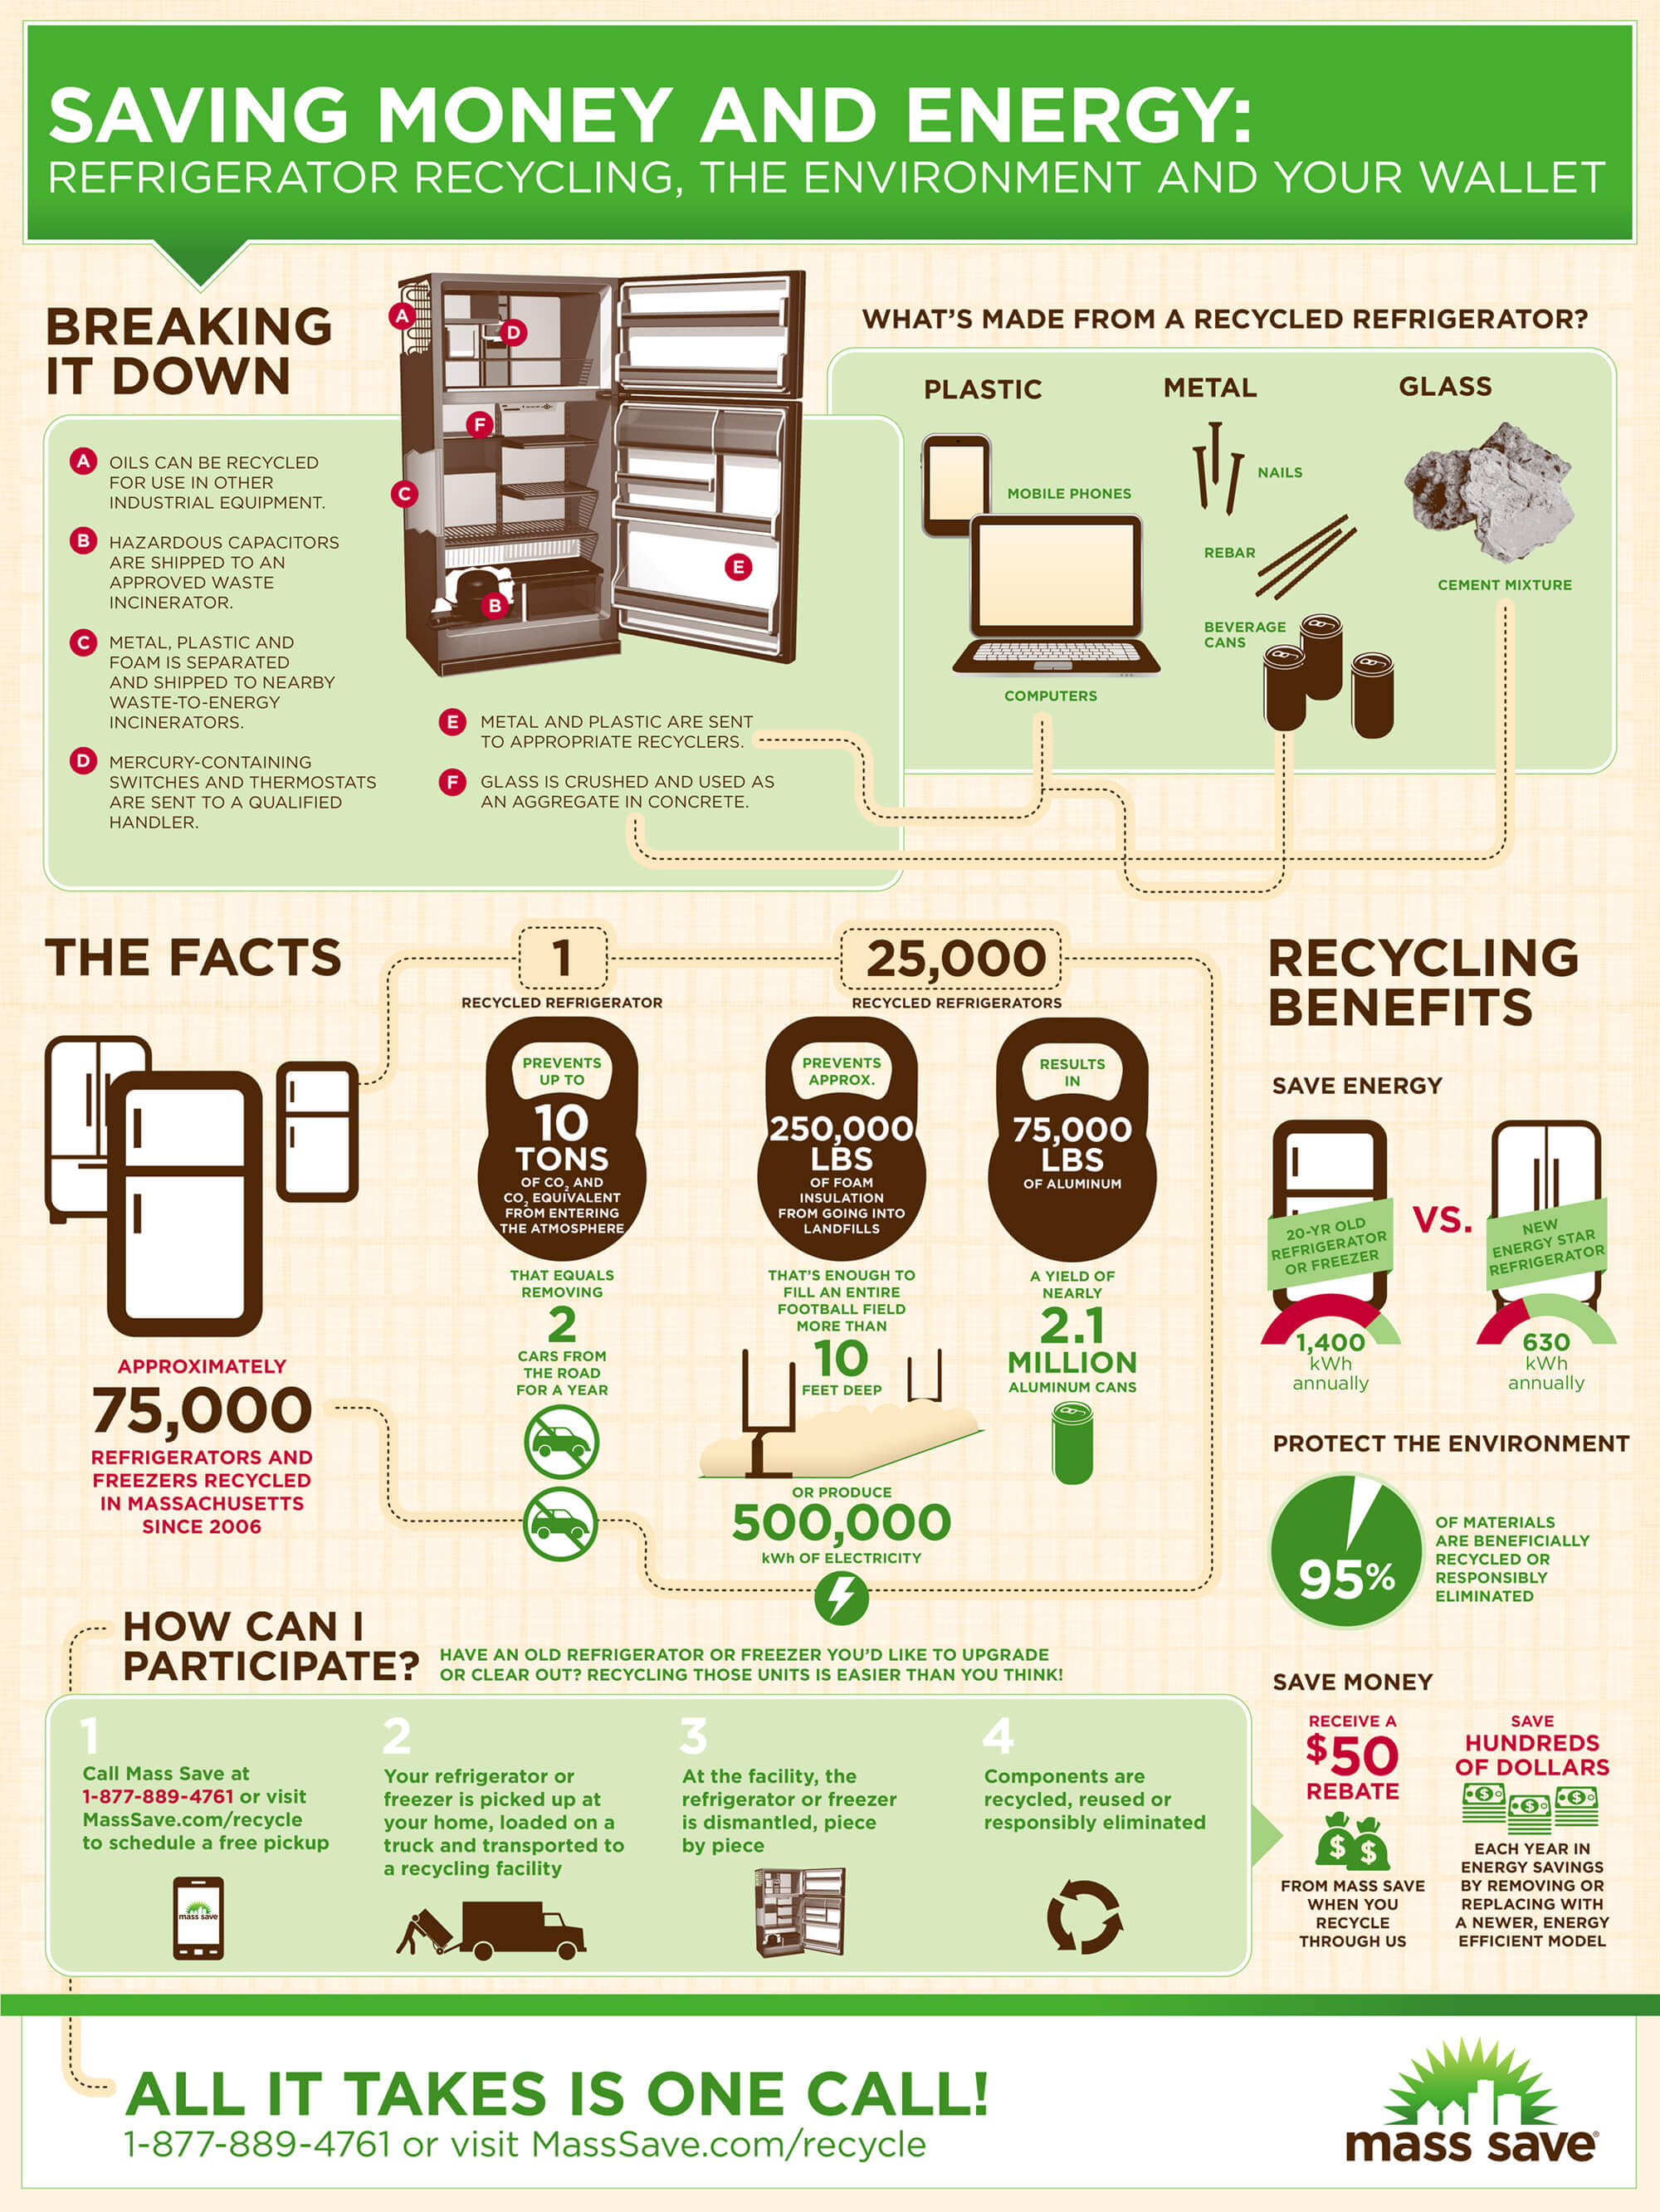 Saving Money and Energy Infographic